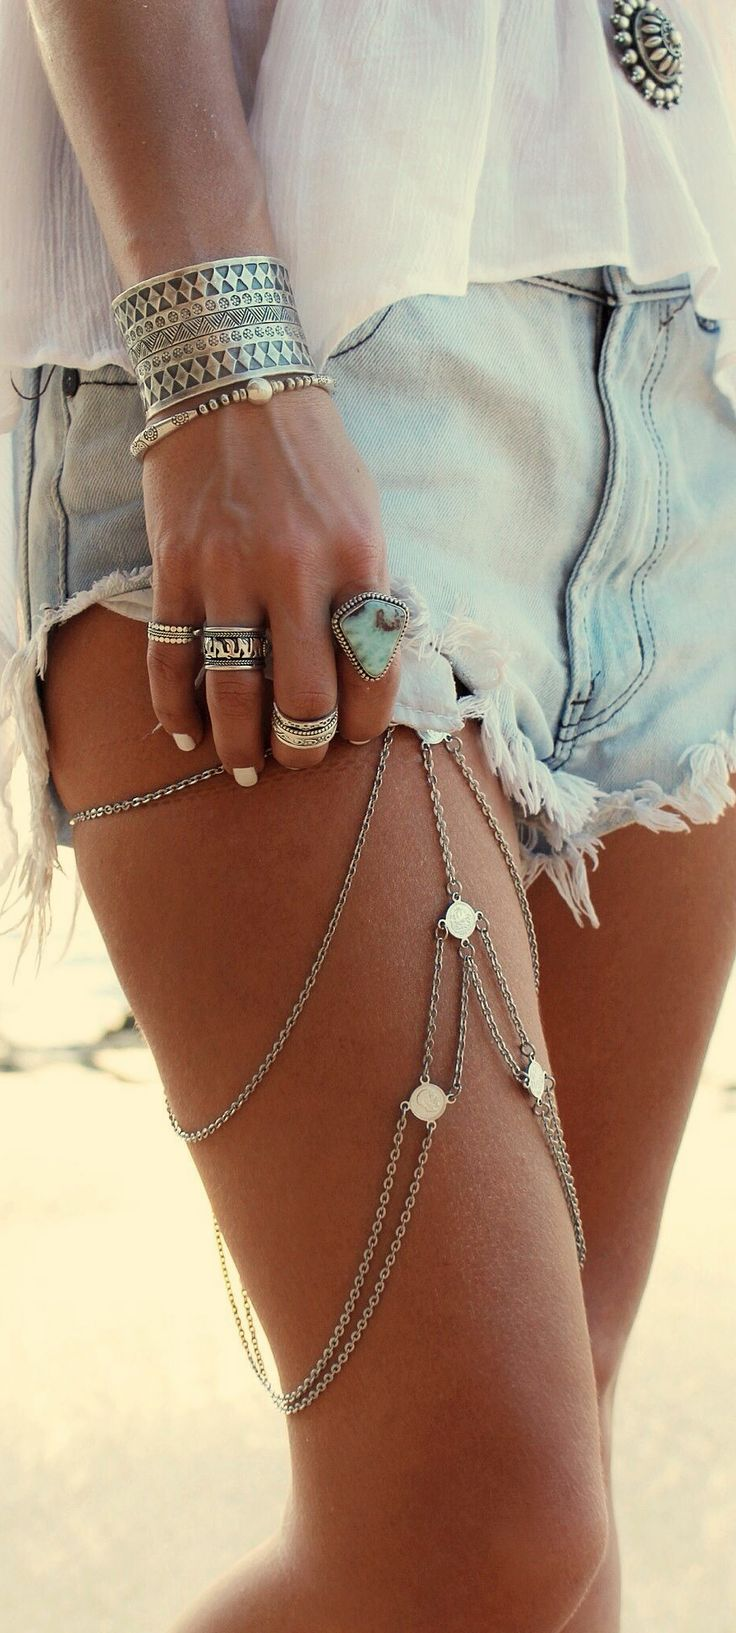 wow this is just awesome #boho #gypsy #soul with sweet love